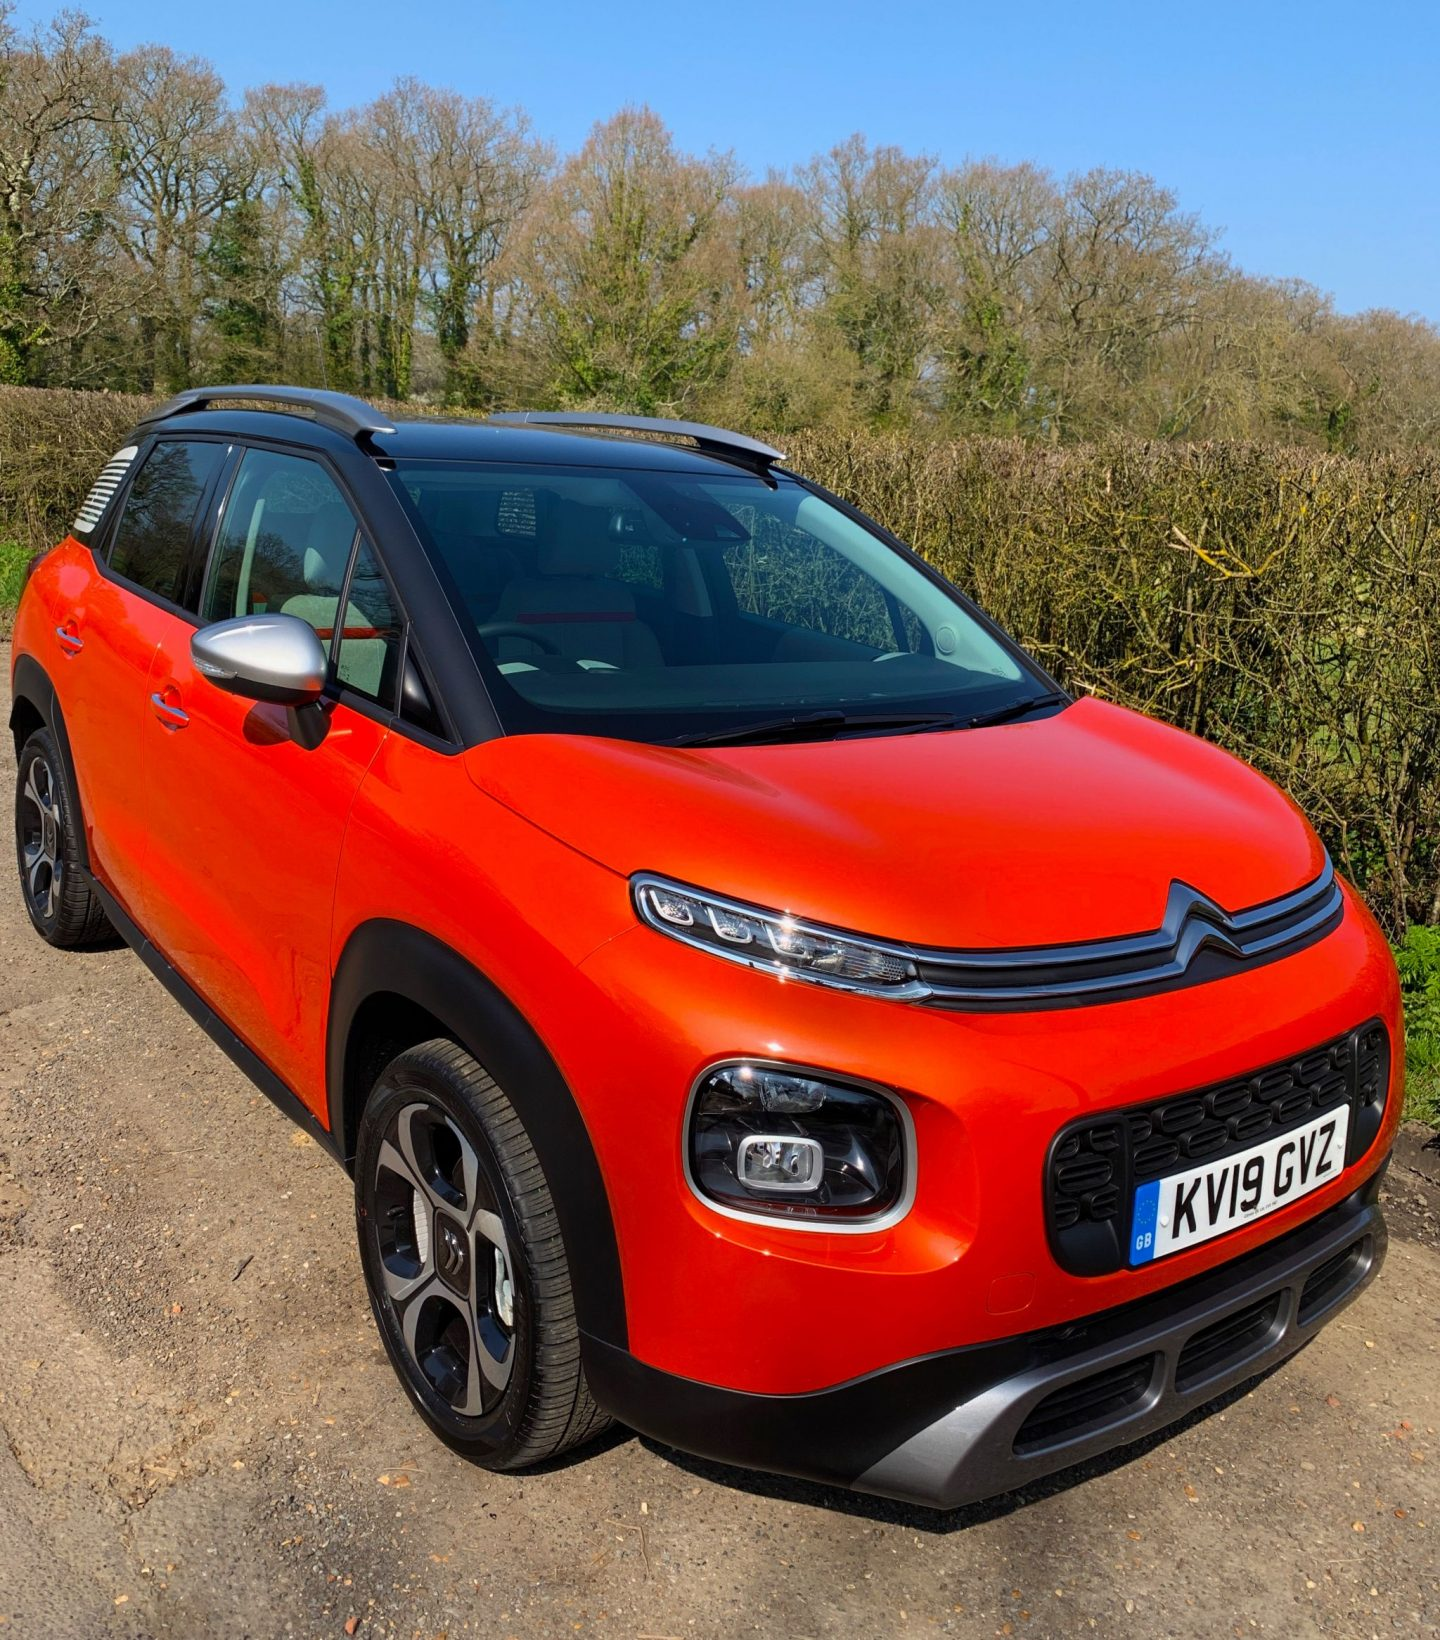 Citroën, Citroën C3 Aircross, Citroën C3 Aircross review, Citroën C3 Aircross test drive, family car, family car reviews, dadbloguk, dad blog, school run dad, sahd, wahd, car, car reviews